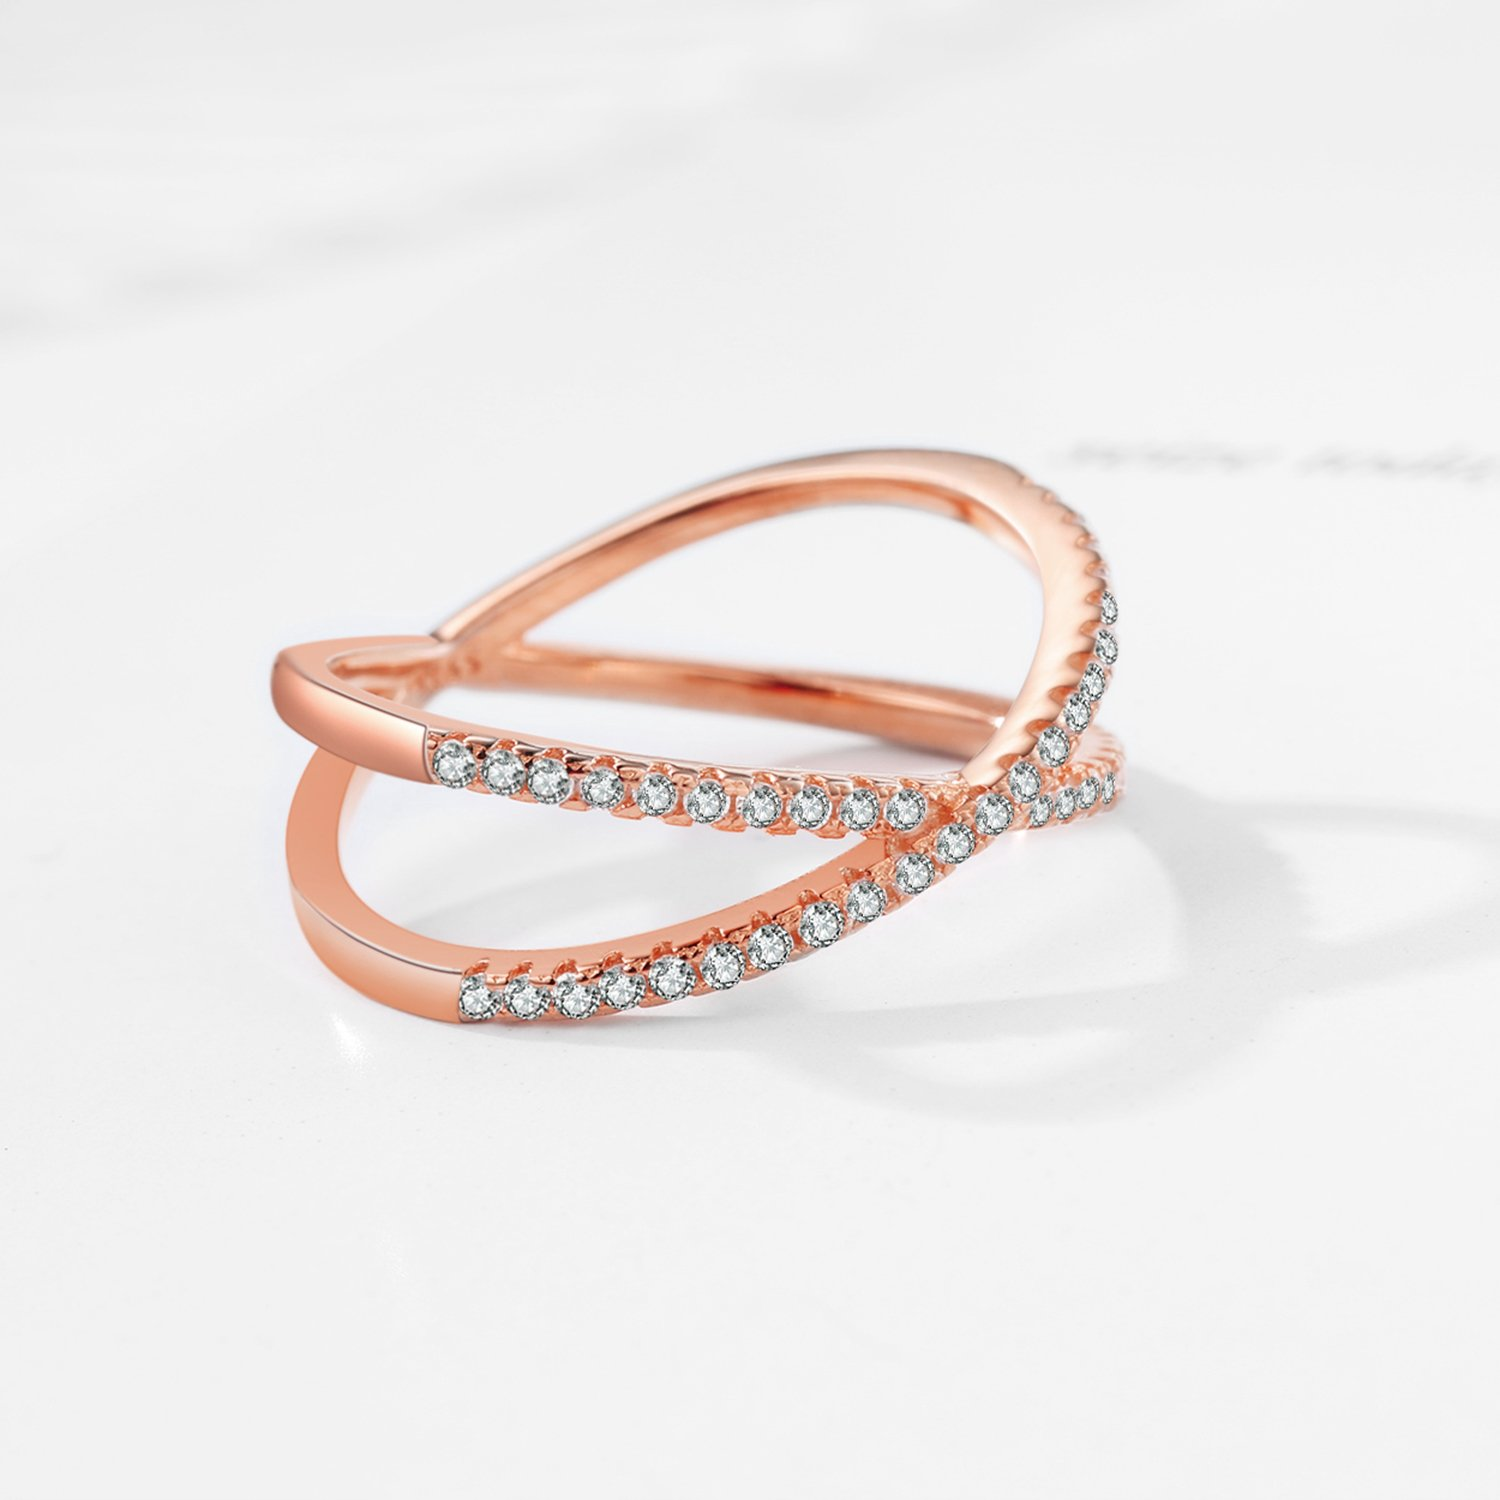 X Ring Sterling Silver, Cubic Zirconia X Criss Cross Ring Women, Size 6-8 (Rose-Gold-Plated-Silver, 7) by SISGEM (Image #5)